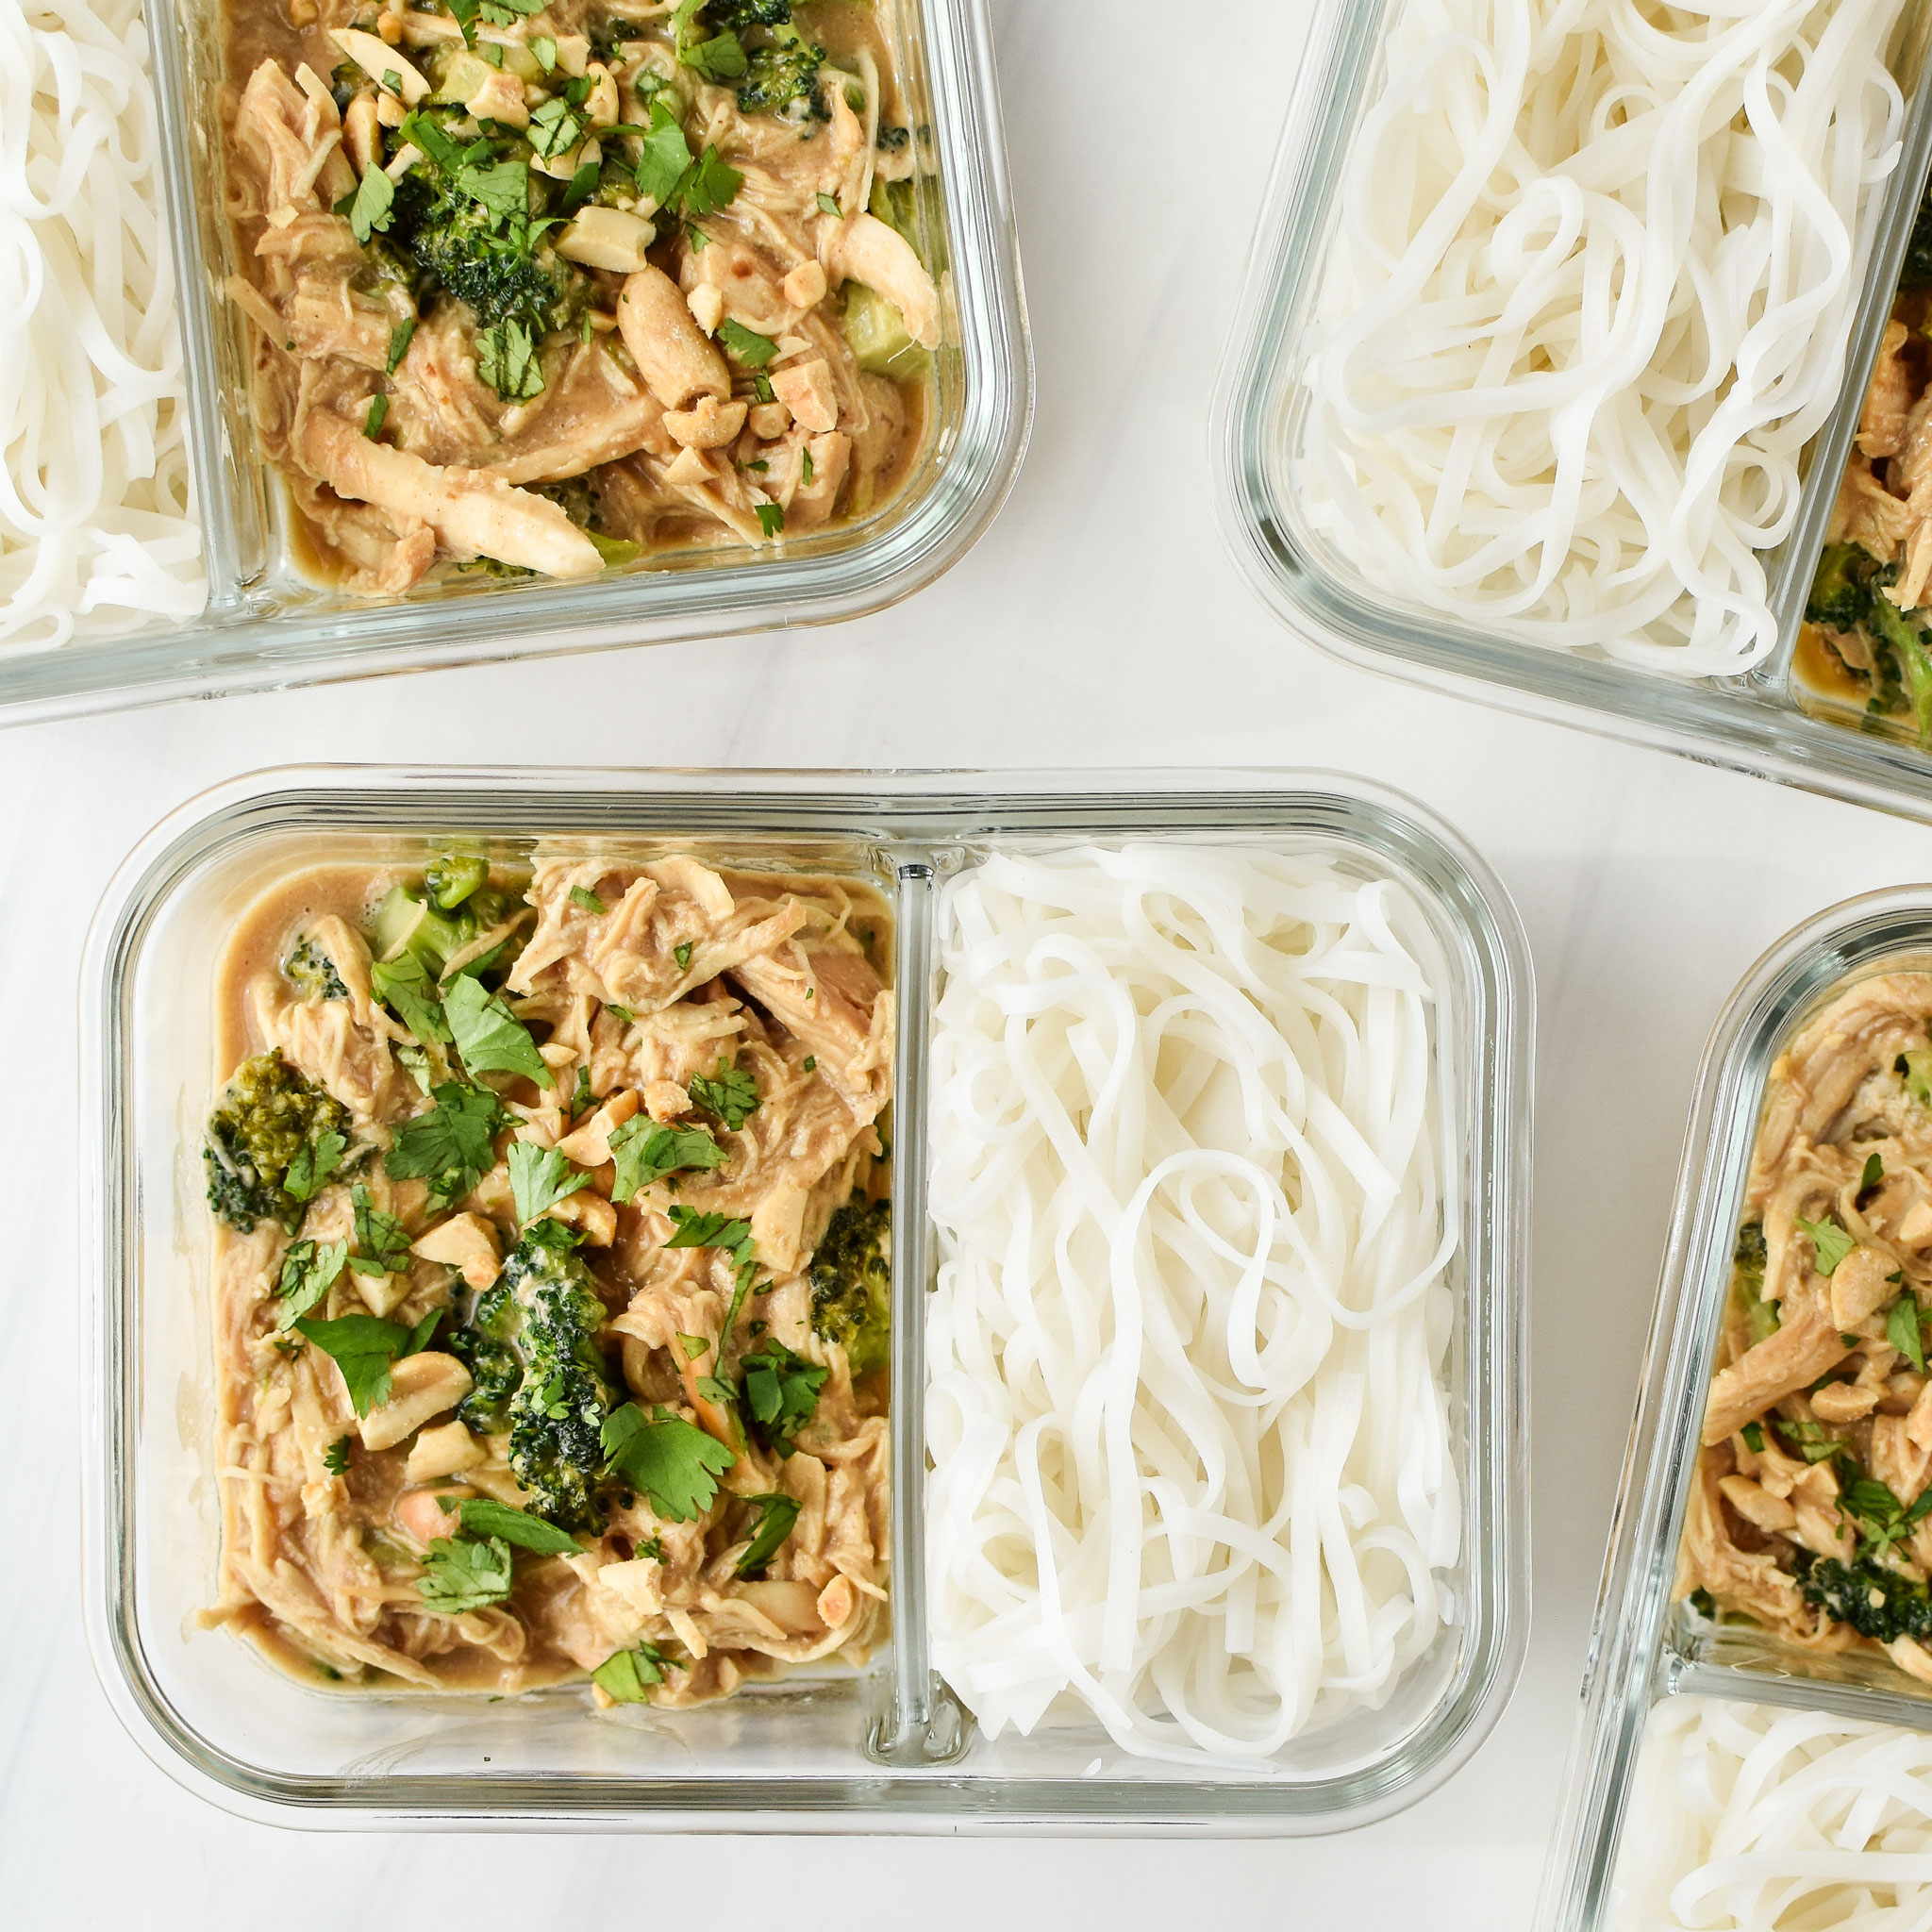 slow cooker peanut chicken noodles meal prep pictured from above in 2 compartment glass meal prep containers